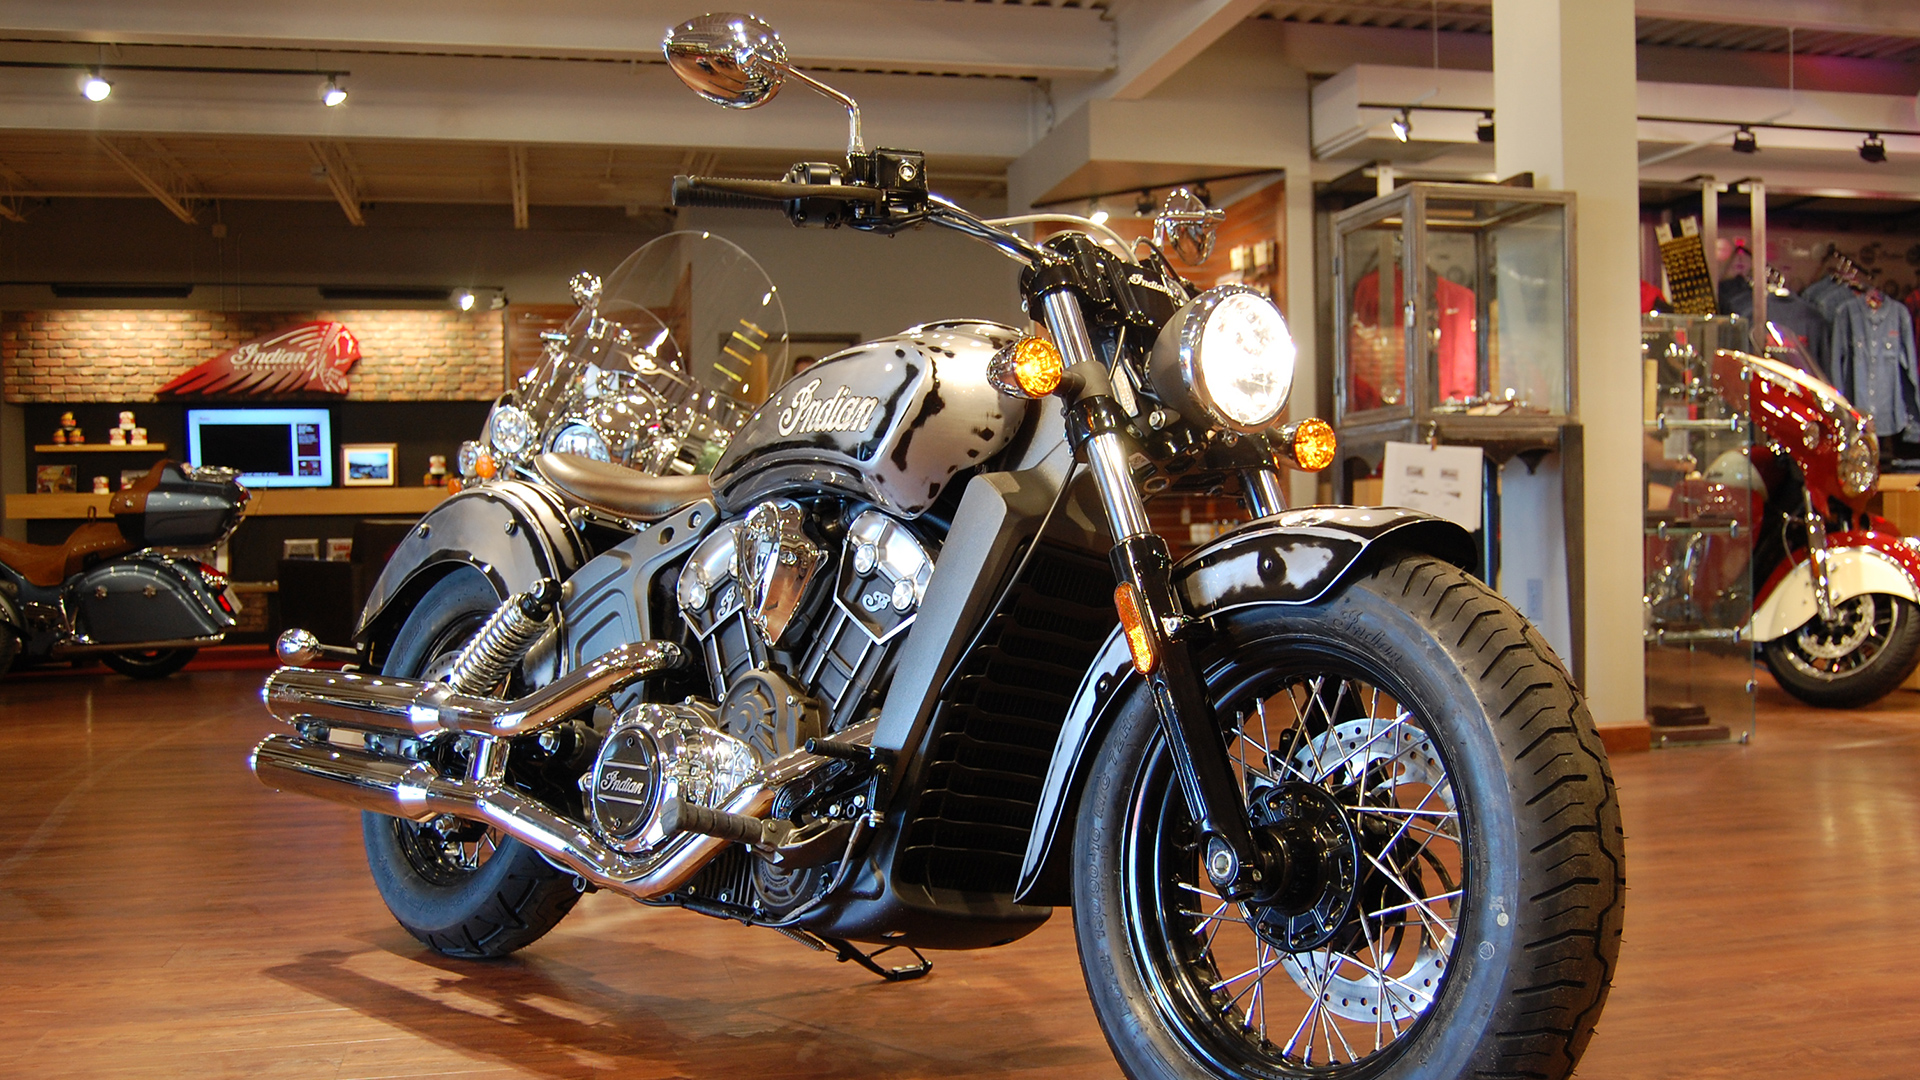 2016 indian scout custom dealer contest winners paul tan - image 464993